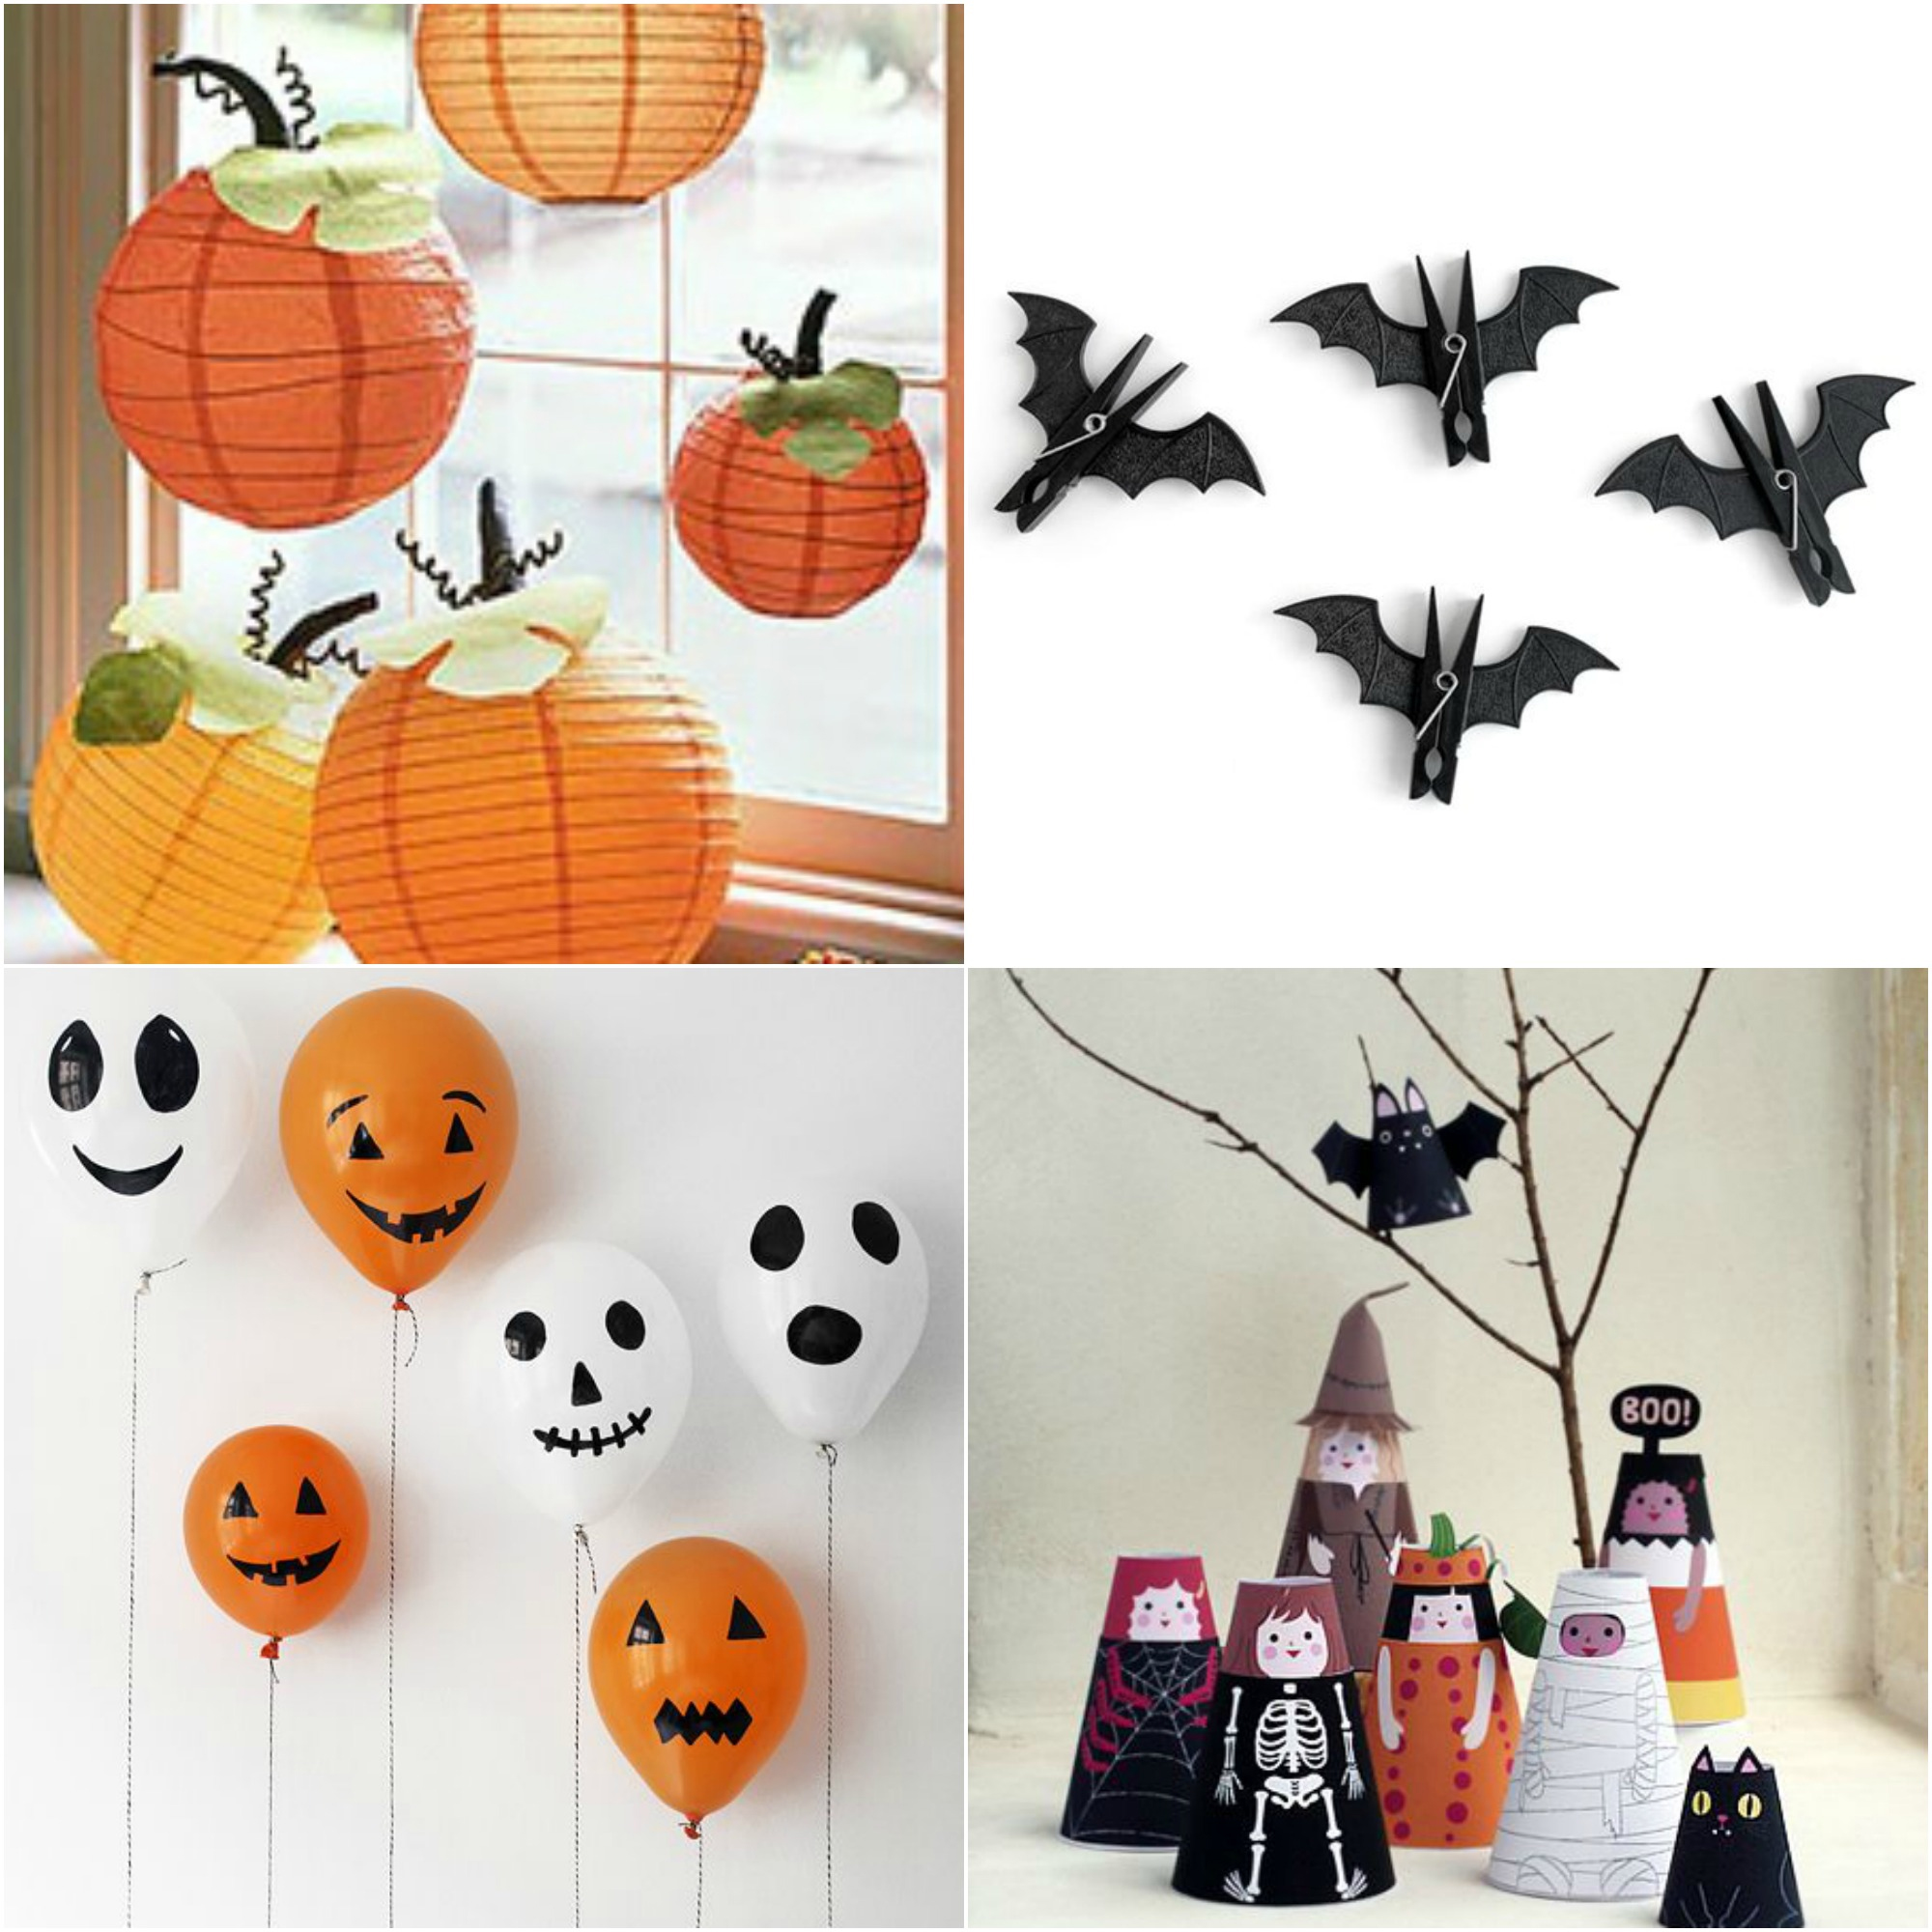 Ideas Para Decorar Halloween Como Decorar La Puerta De La Casa Para Halloween